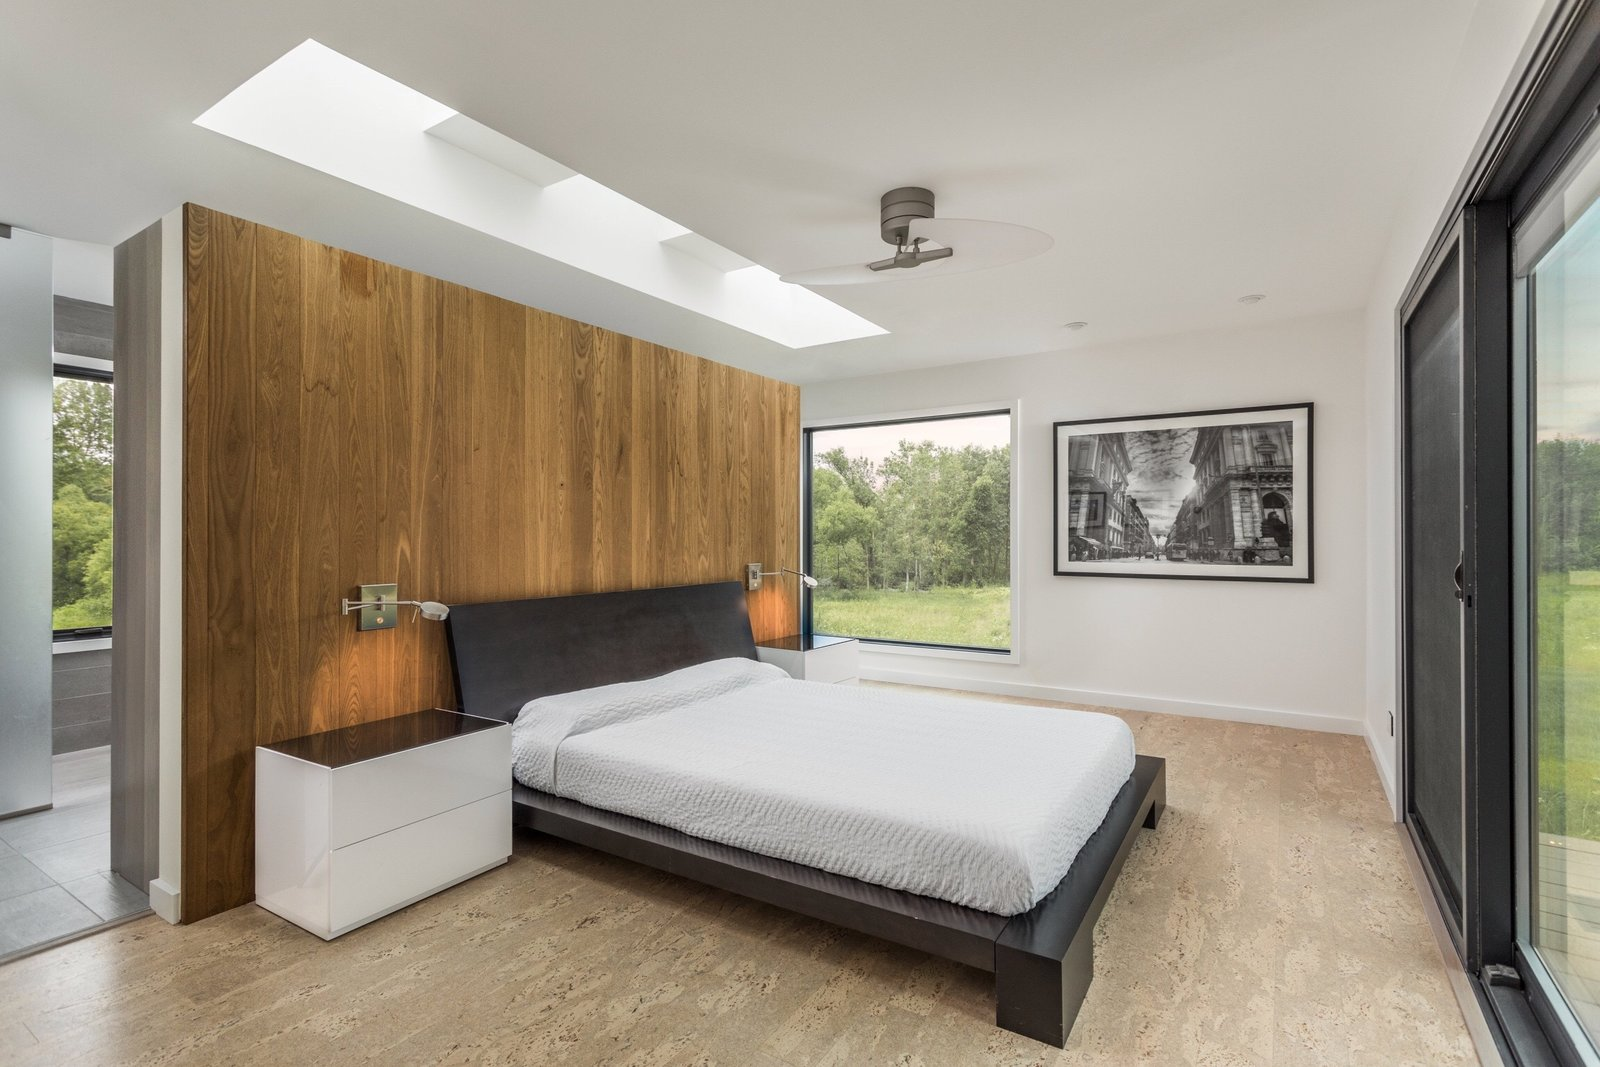 The bedroom features a floating wall, with beautiful views on three sides.  Tagged: Bedroom, Bed, Night Stands, Ceiling Lighting, Recessed Lighting, Cork Floor, and Cement Tile Floor.  Copperwood by Kevin Swan